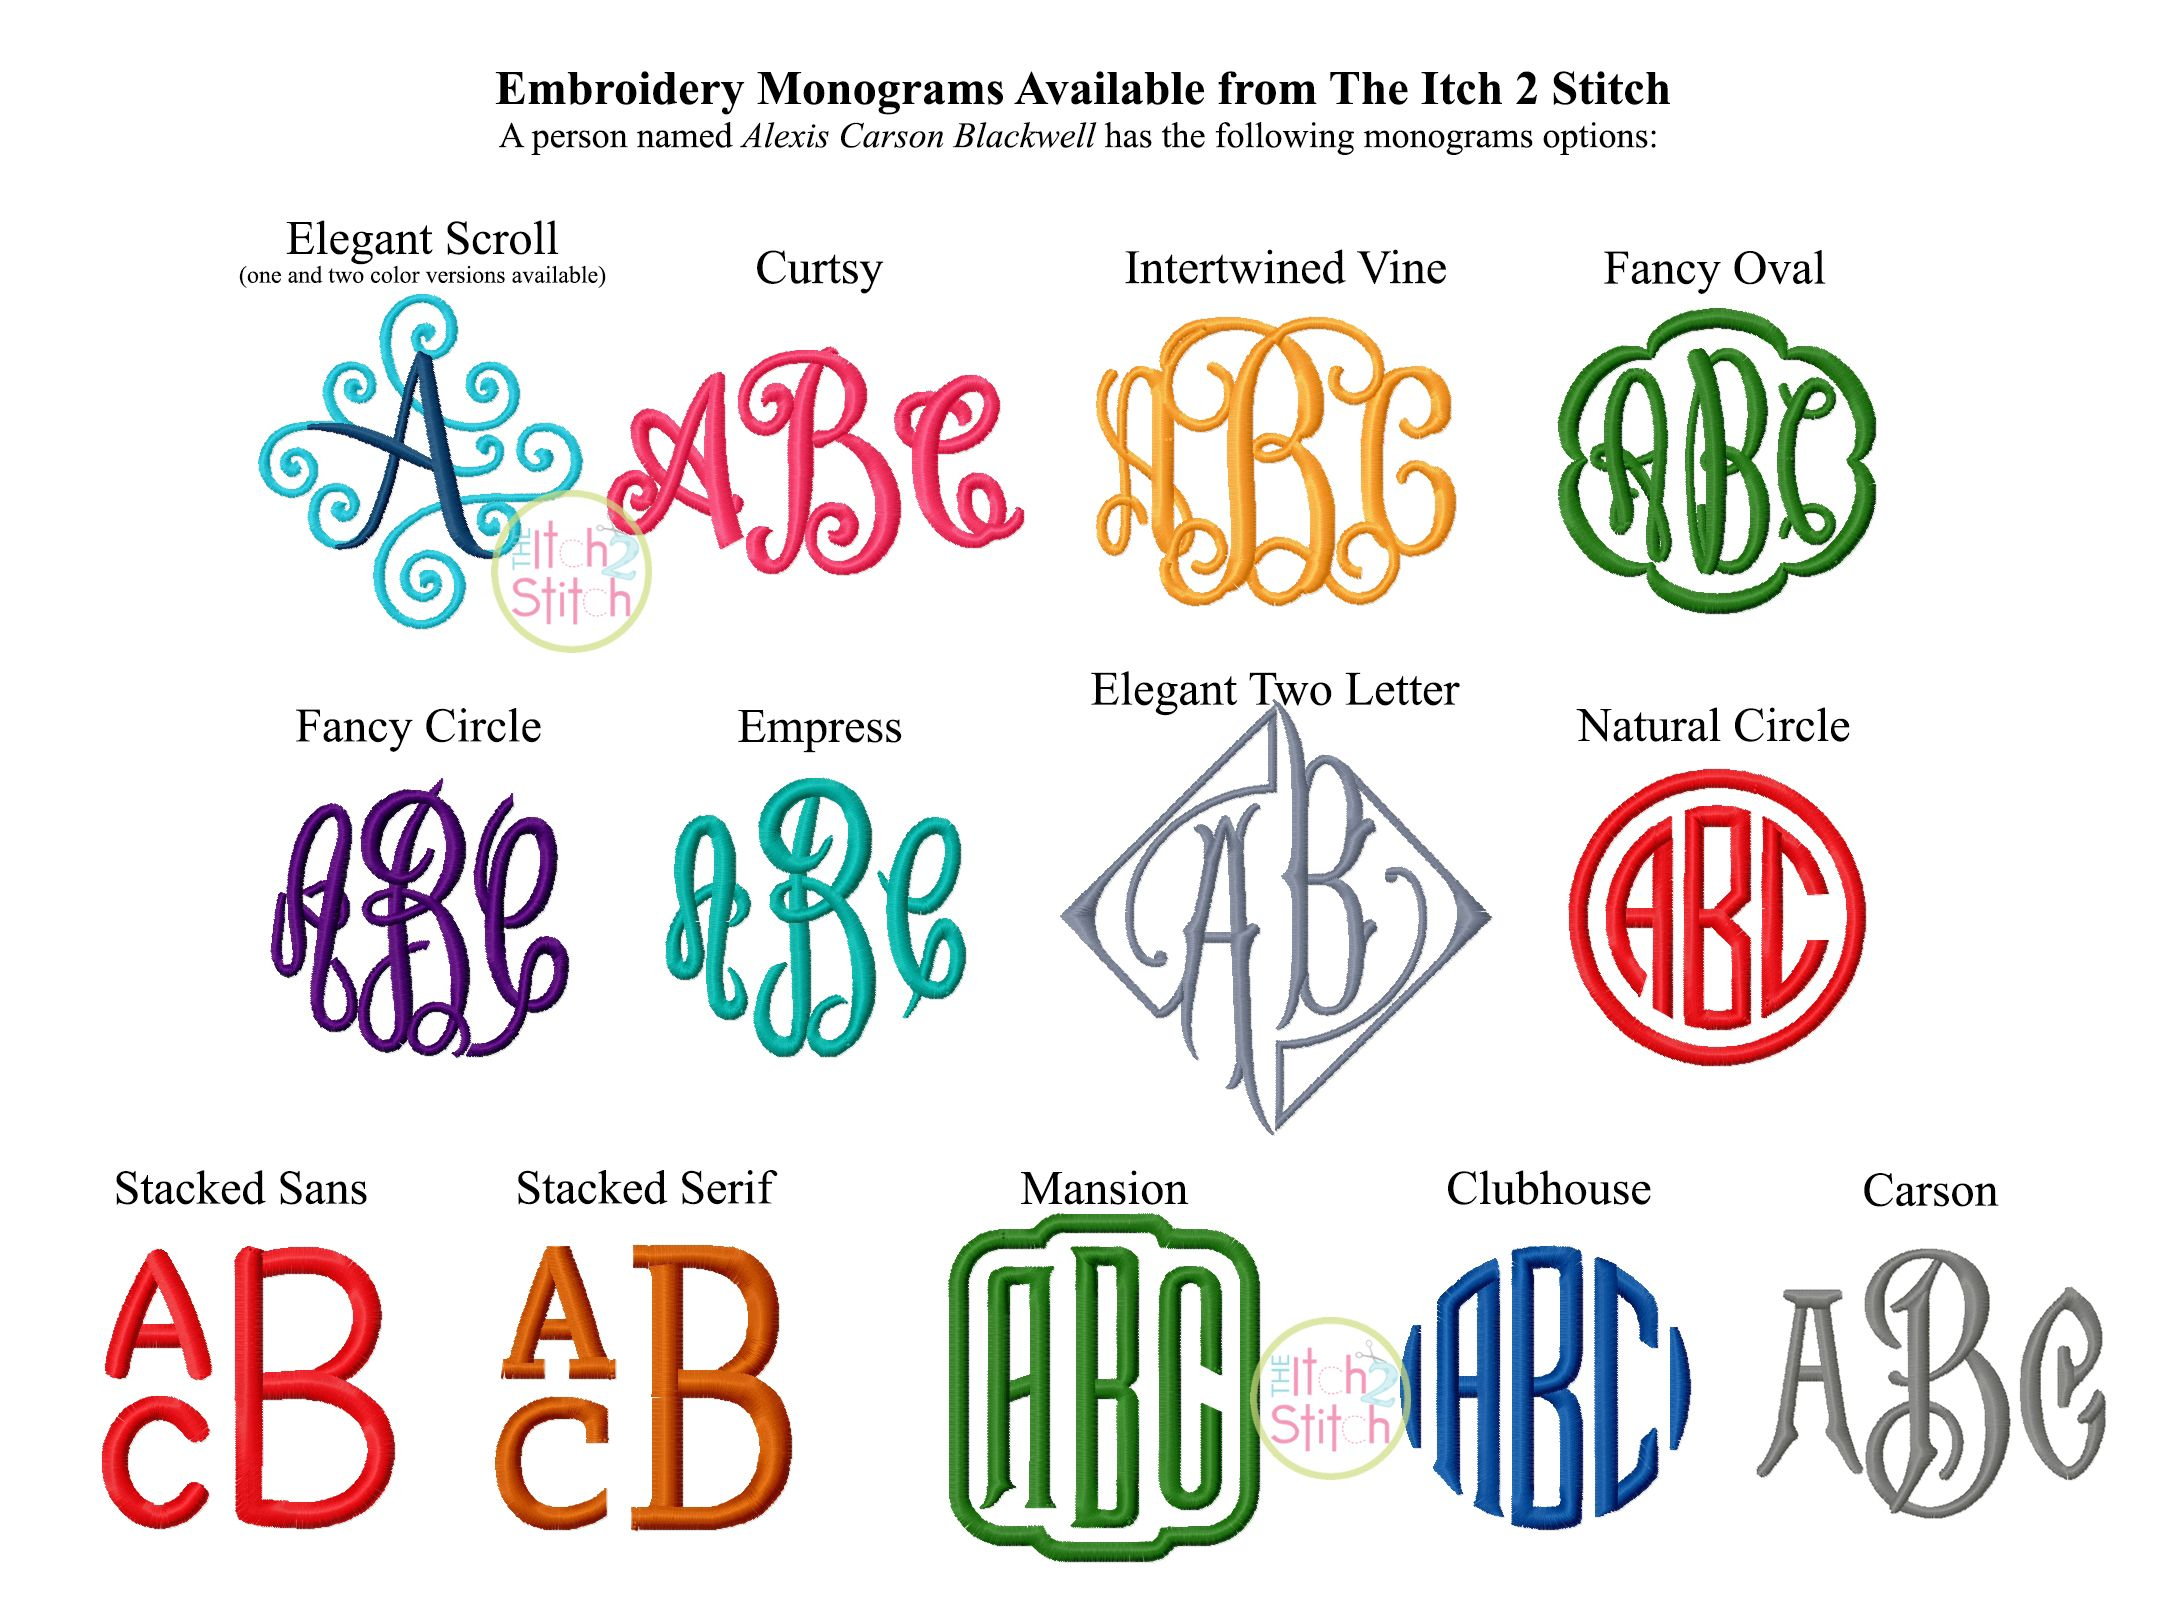 monogram options available from the itch 2 stitch       theitch2stitch com  embroidery